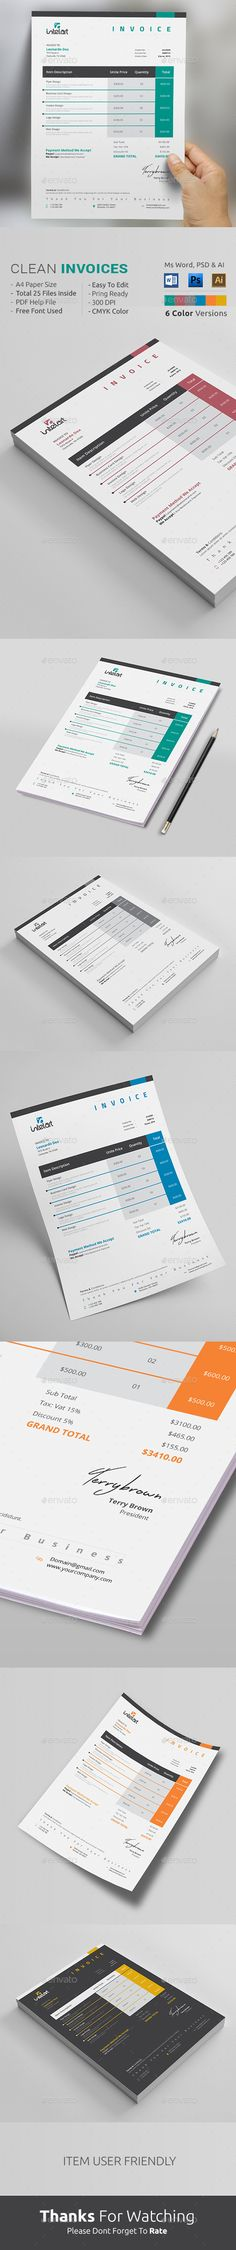 Business Invoice - microsoft word proposal template free download